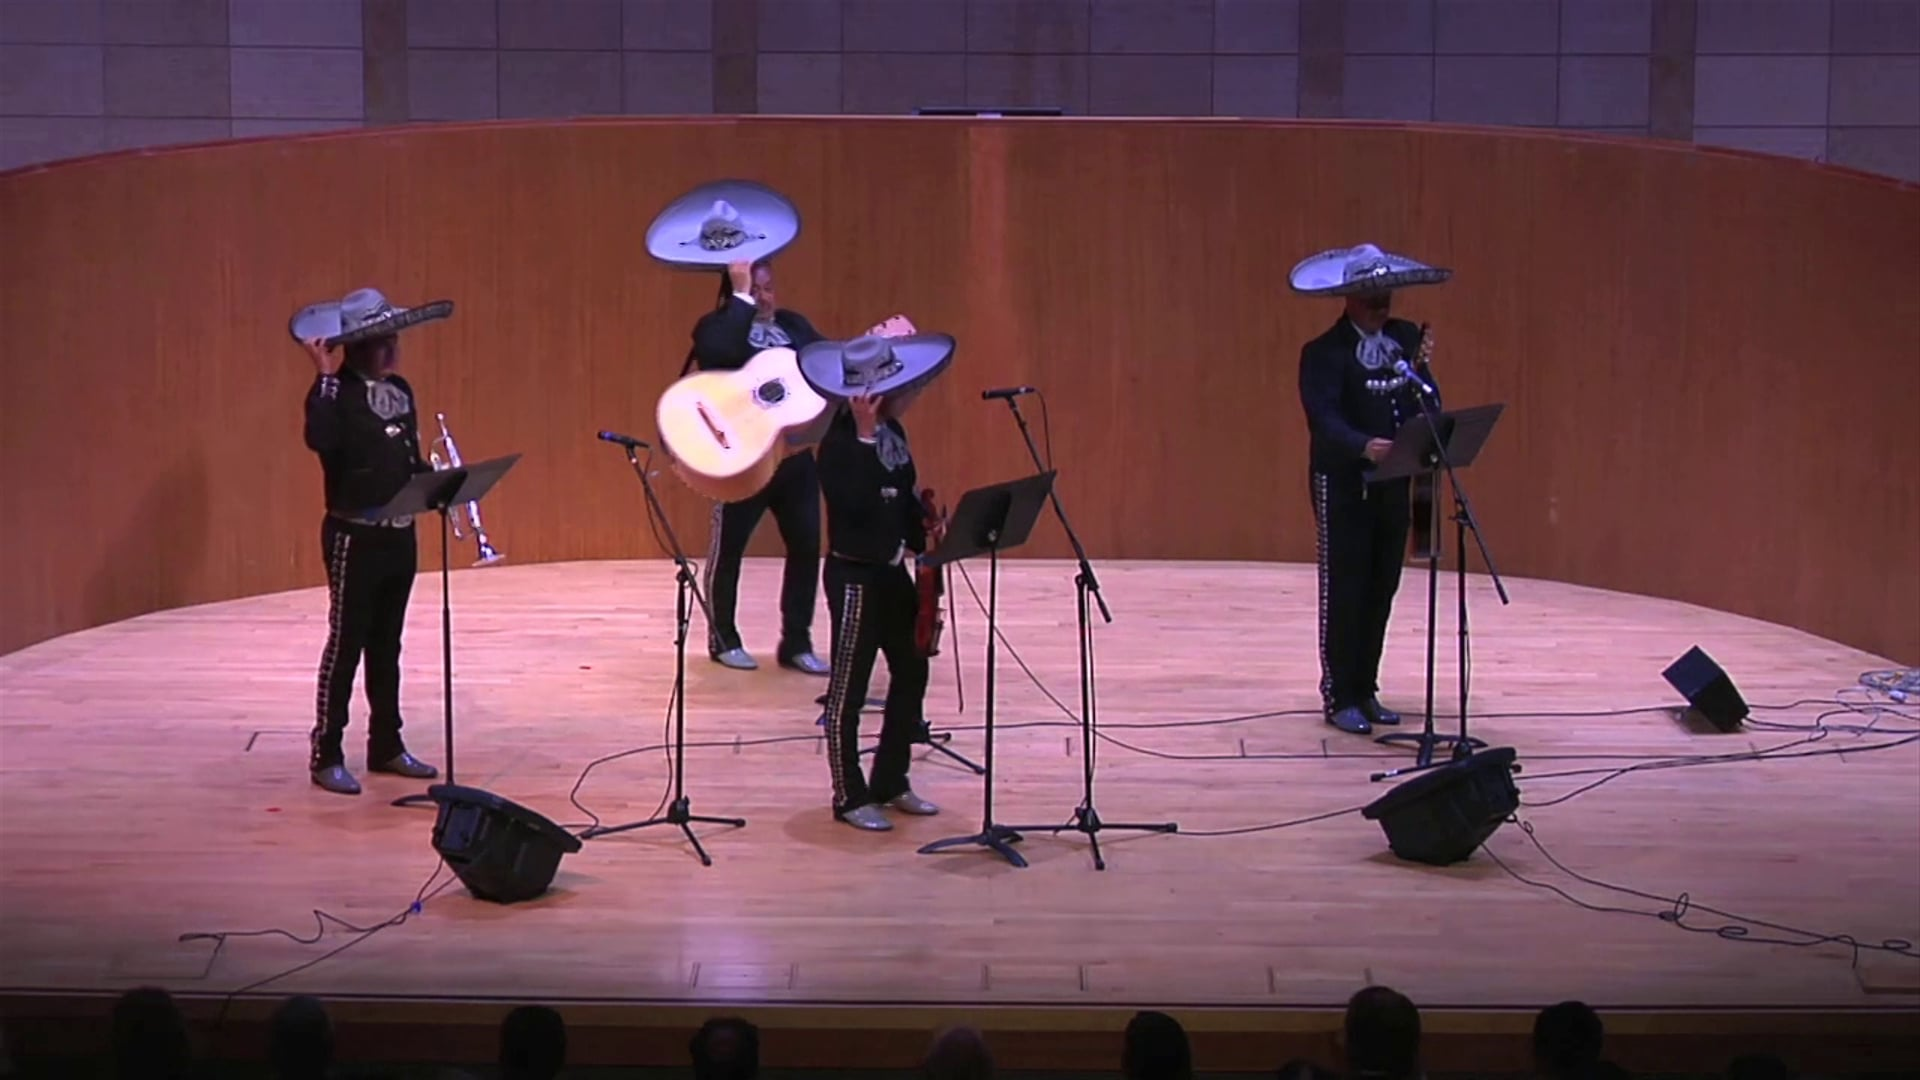 John Cage Variations II performed by a Mariachi Band